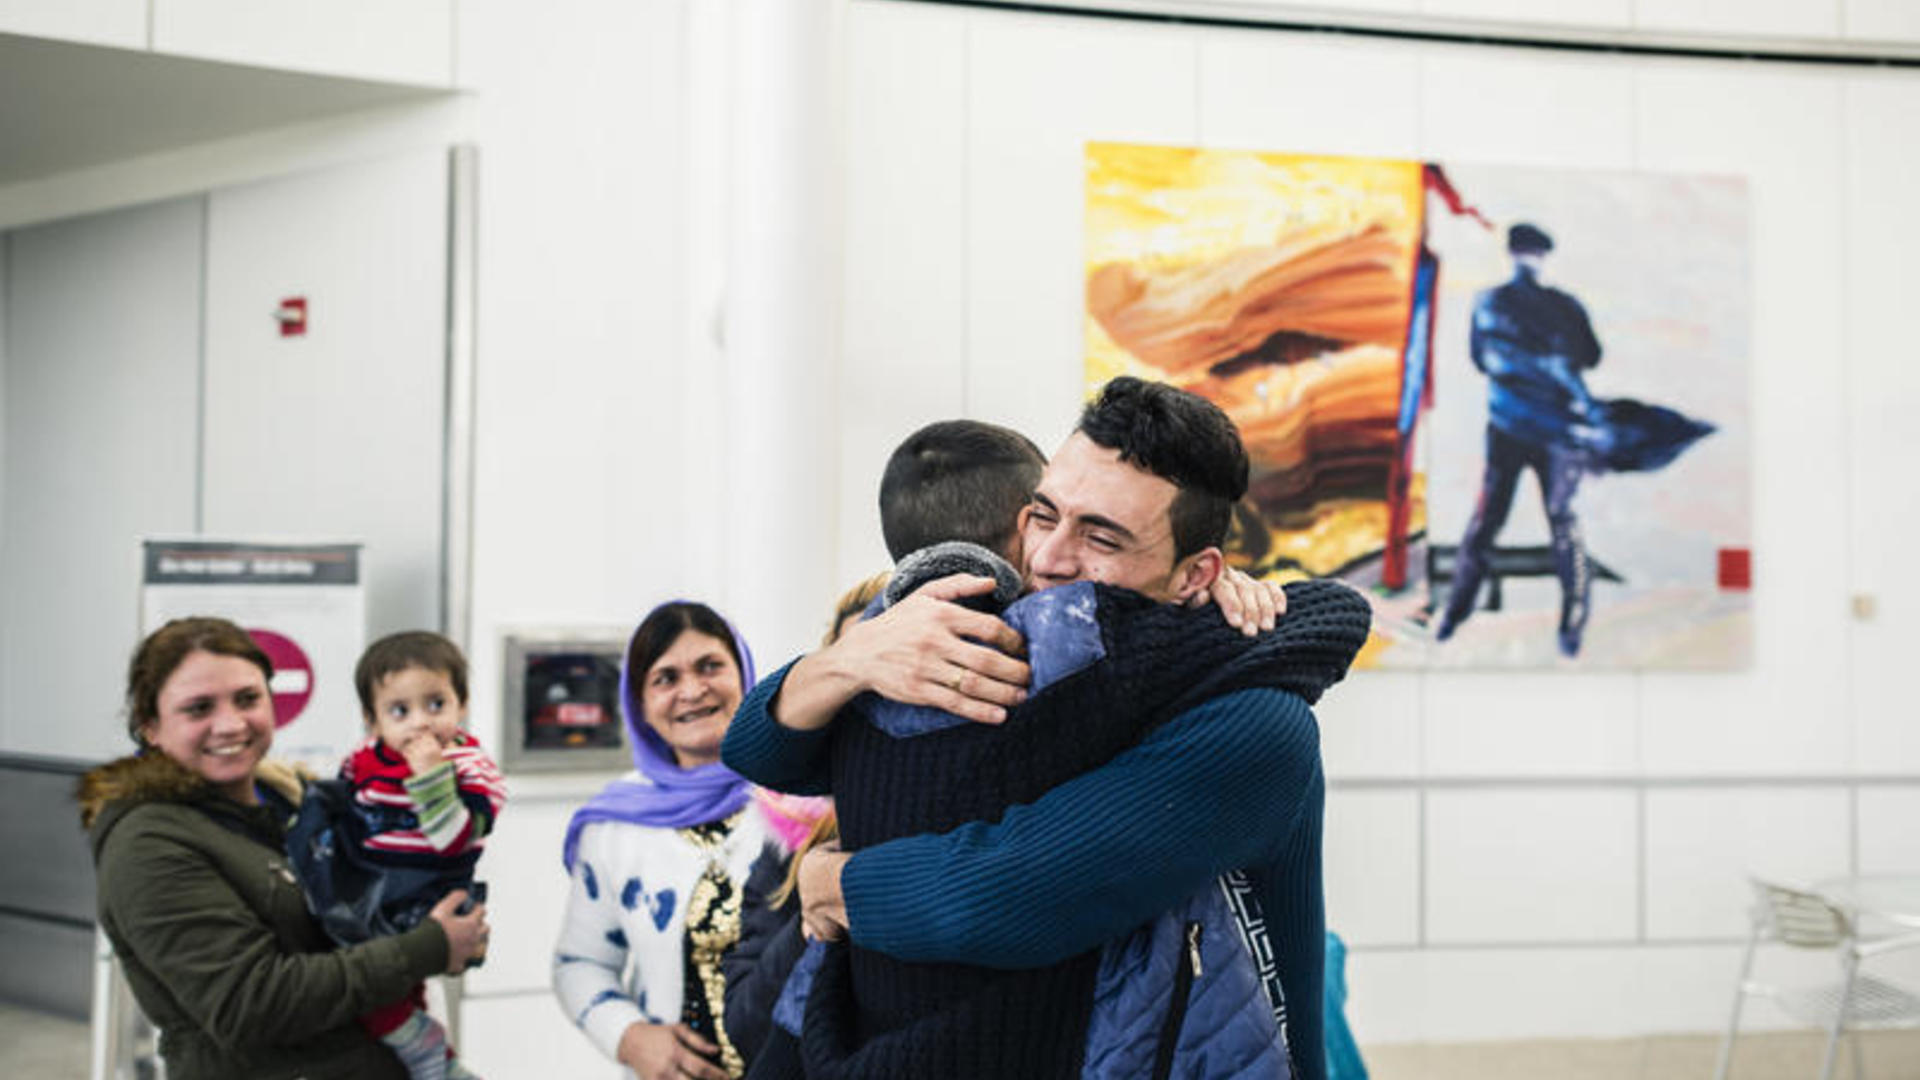 An Iraqi refugee hugs one of his relatives on arrival at a U.S. airport after being vetted for resettlement